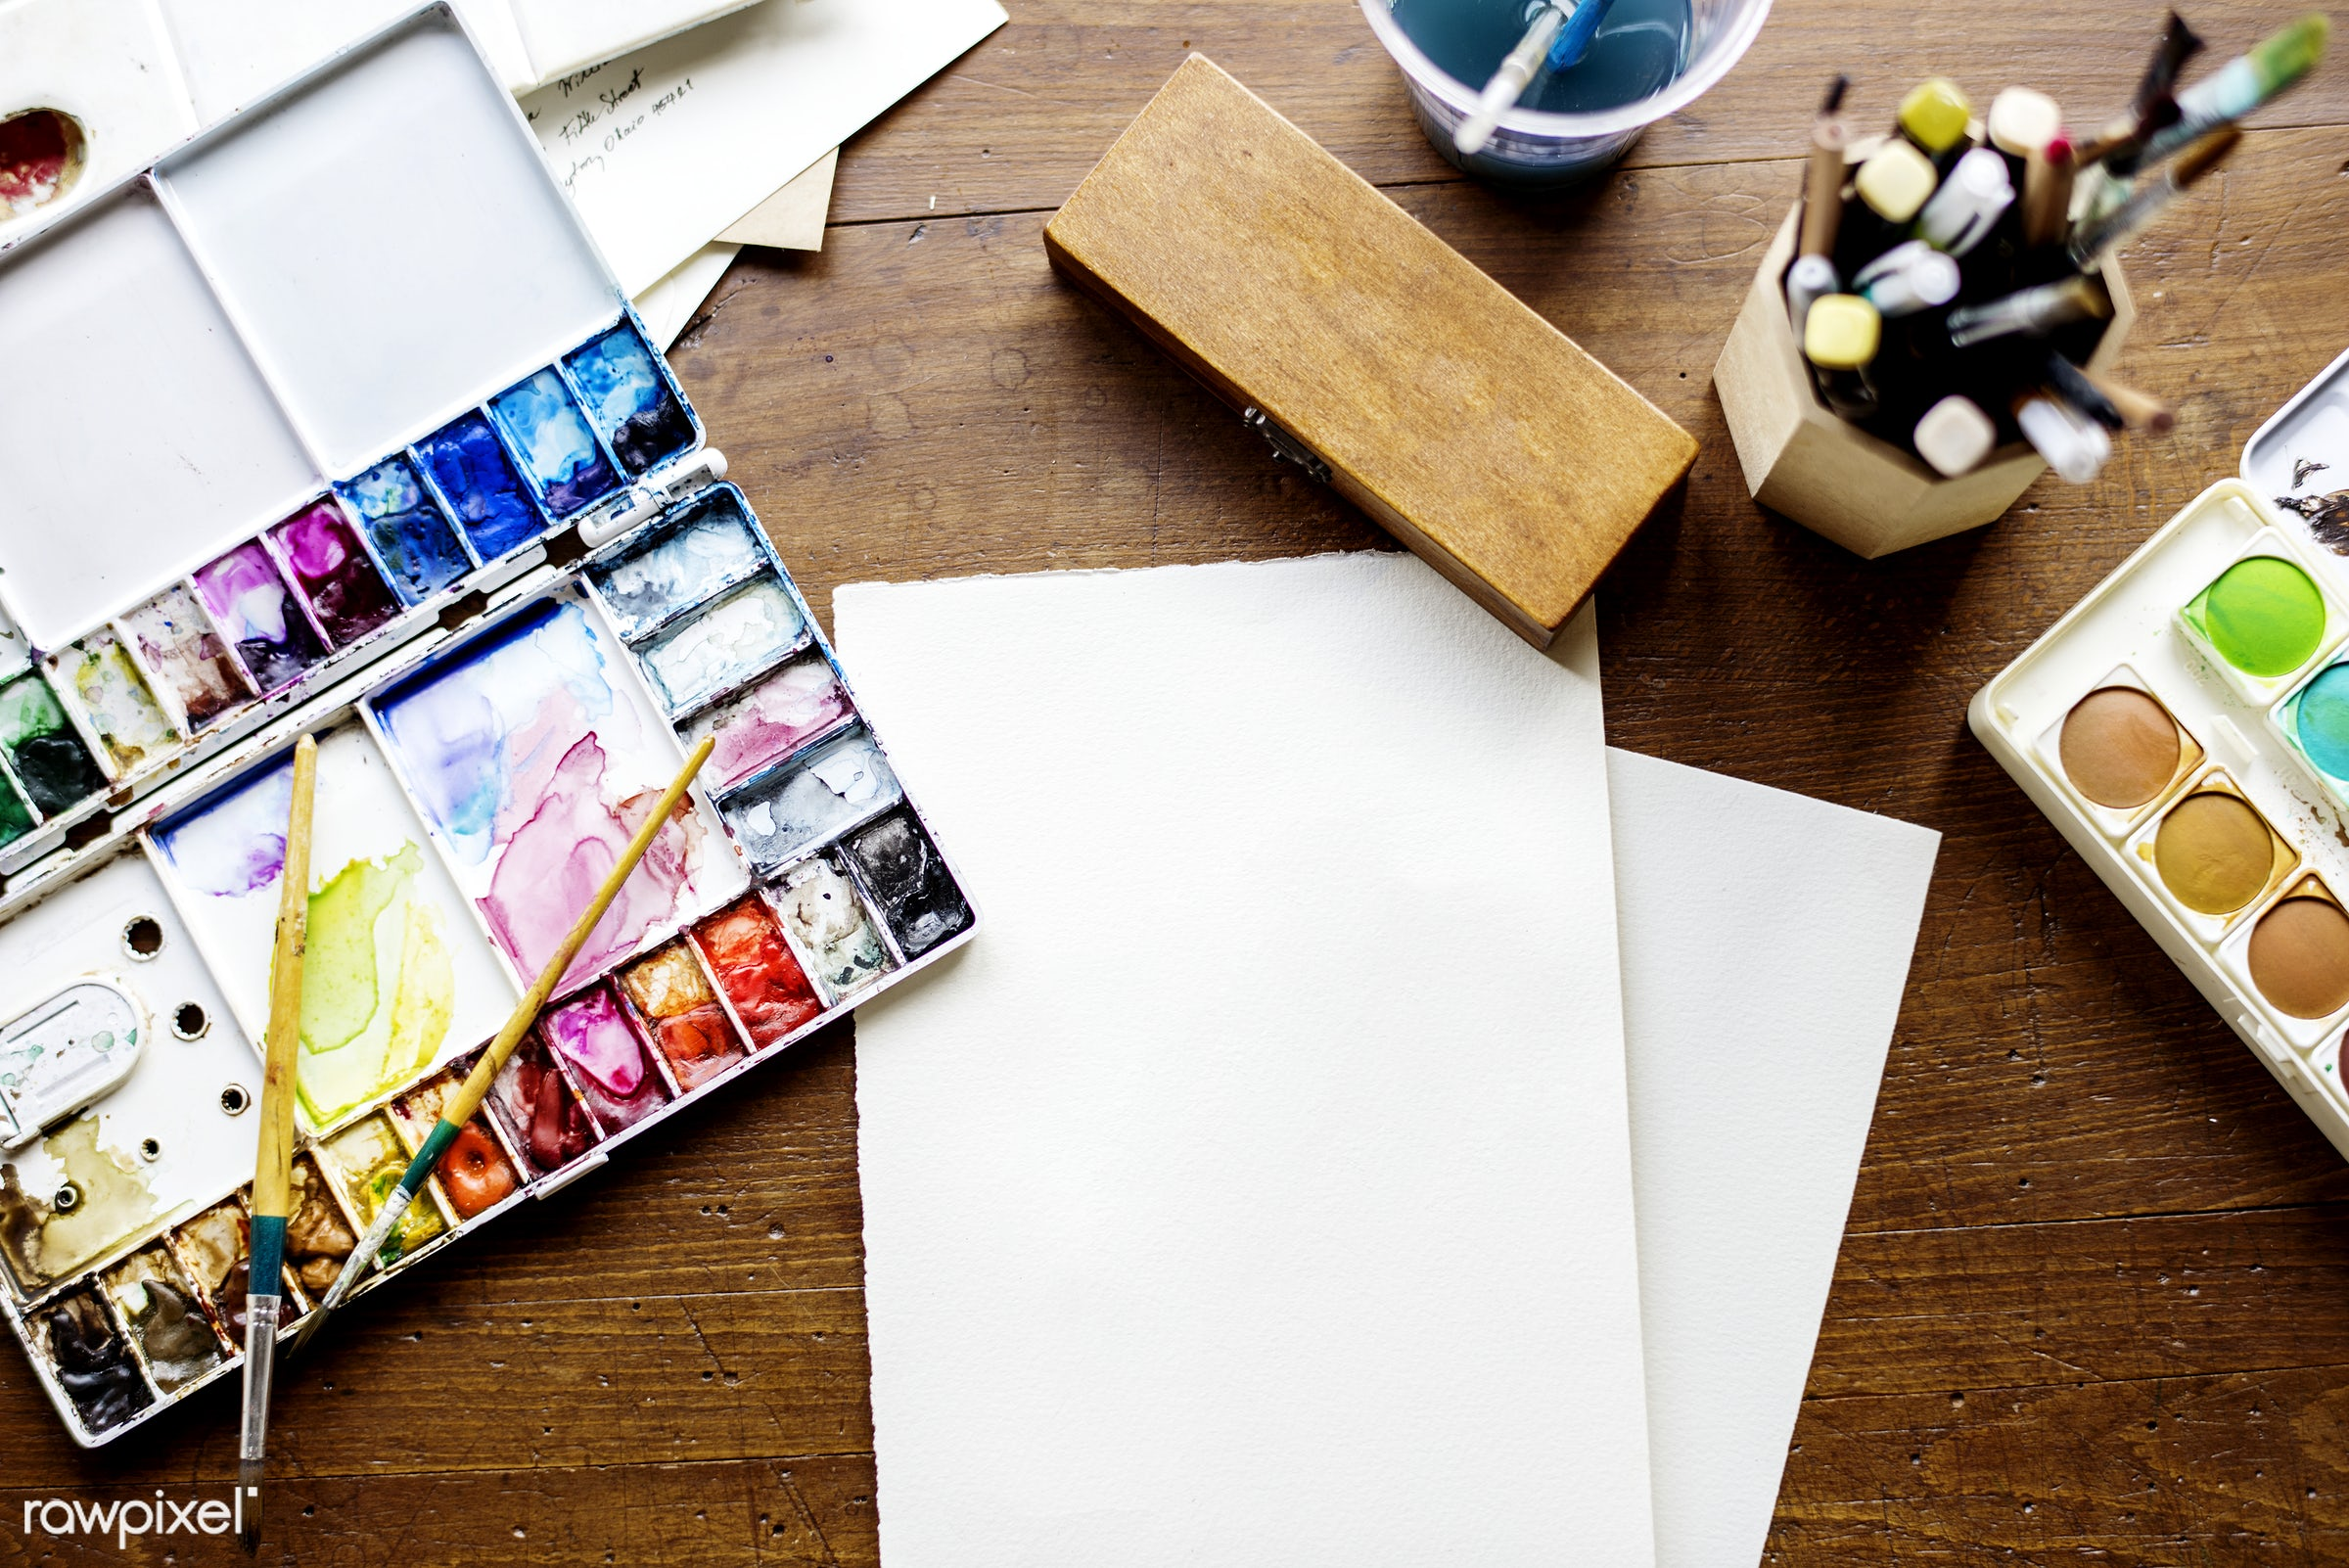 Watercolor materials on the table - watercolor, materials, objects, table, flat lay, paper, art, painting, drawing, skill,...